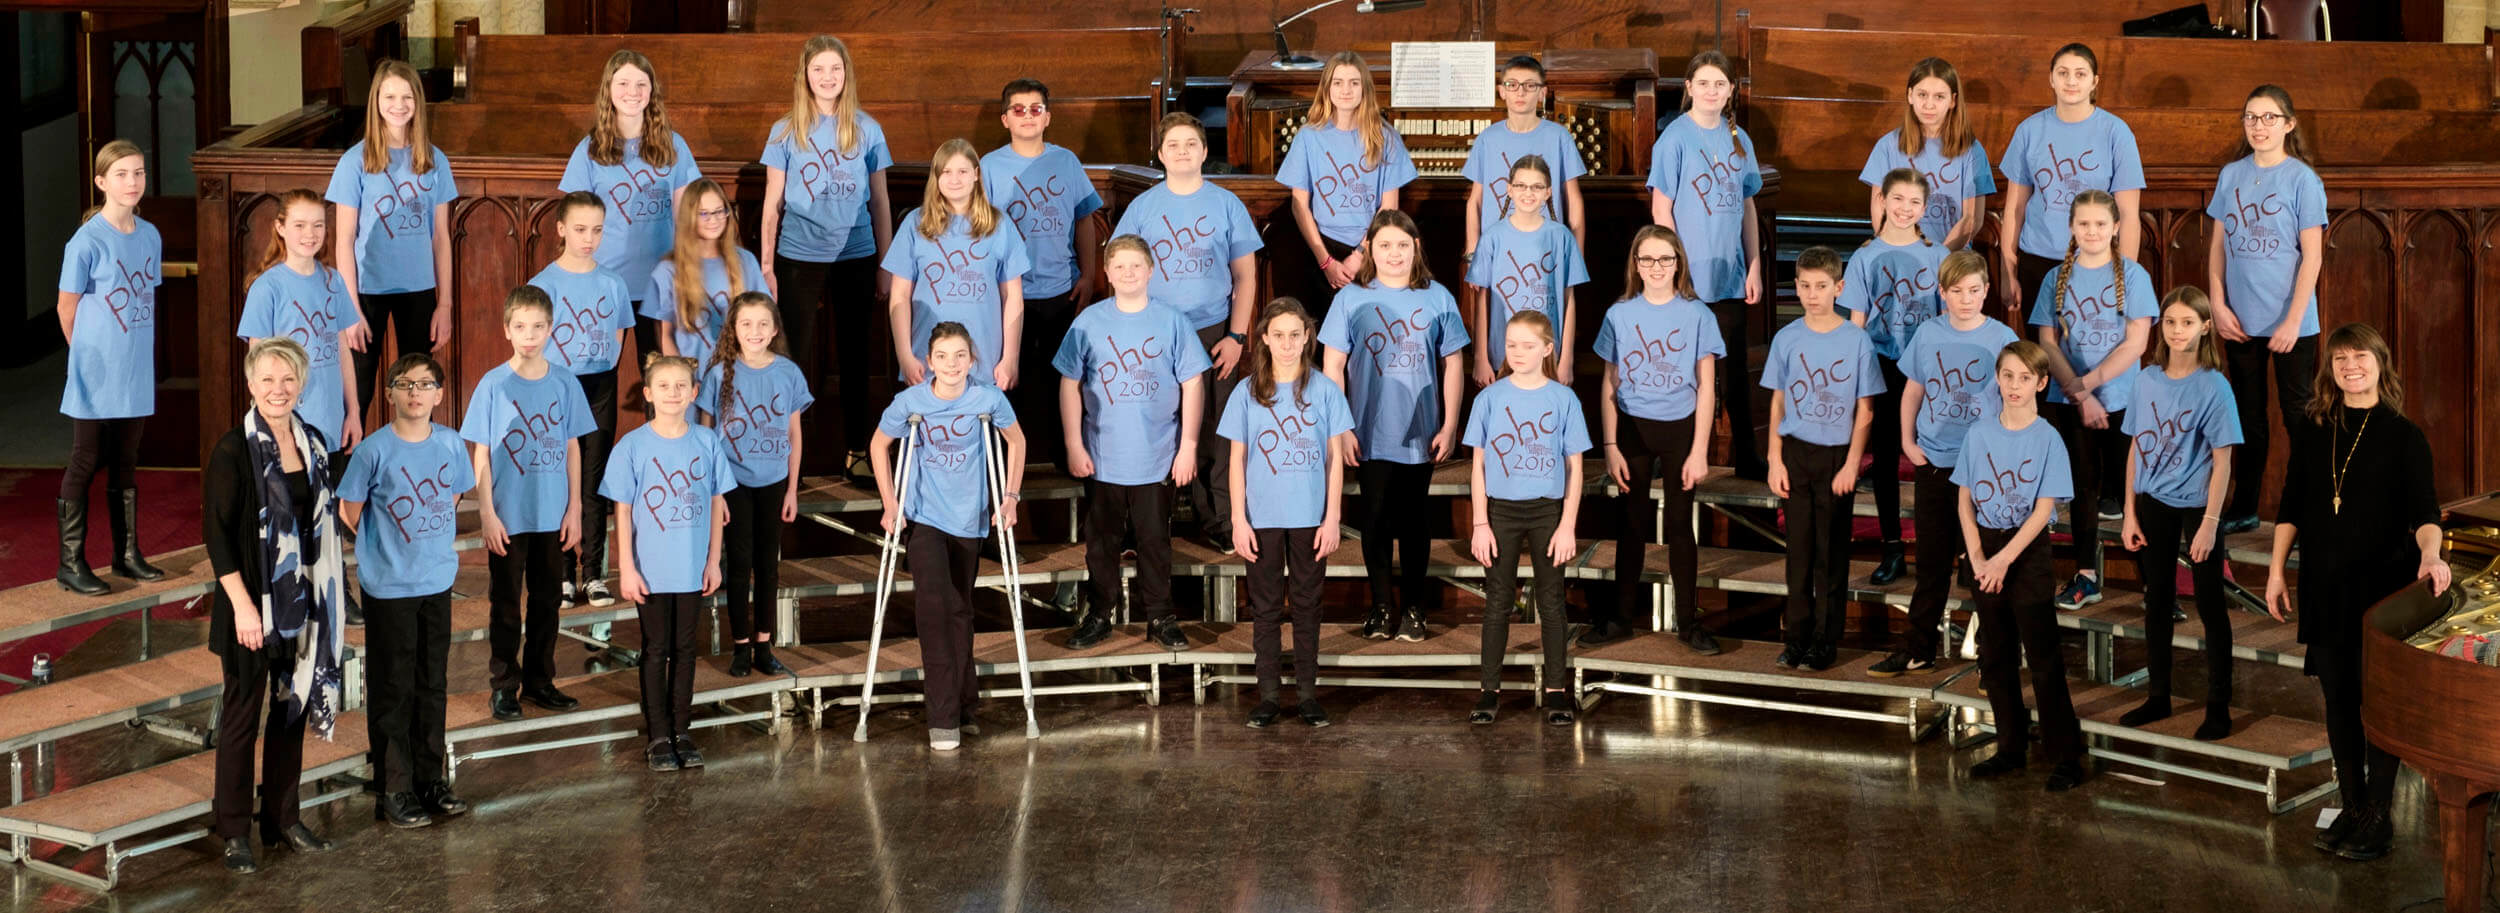 PHC 2019 JUNIOR CHOIR, Millie Hildebrand, conductor and Madeline Hildebrand, piano